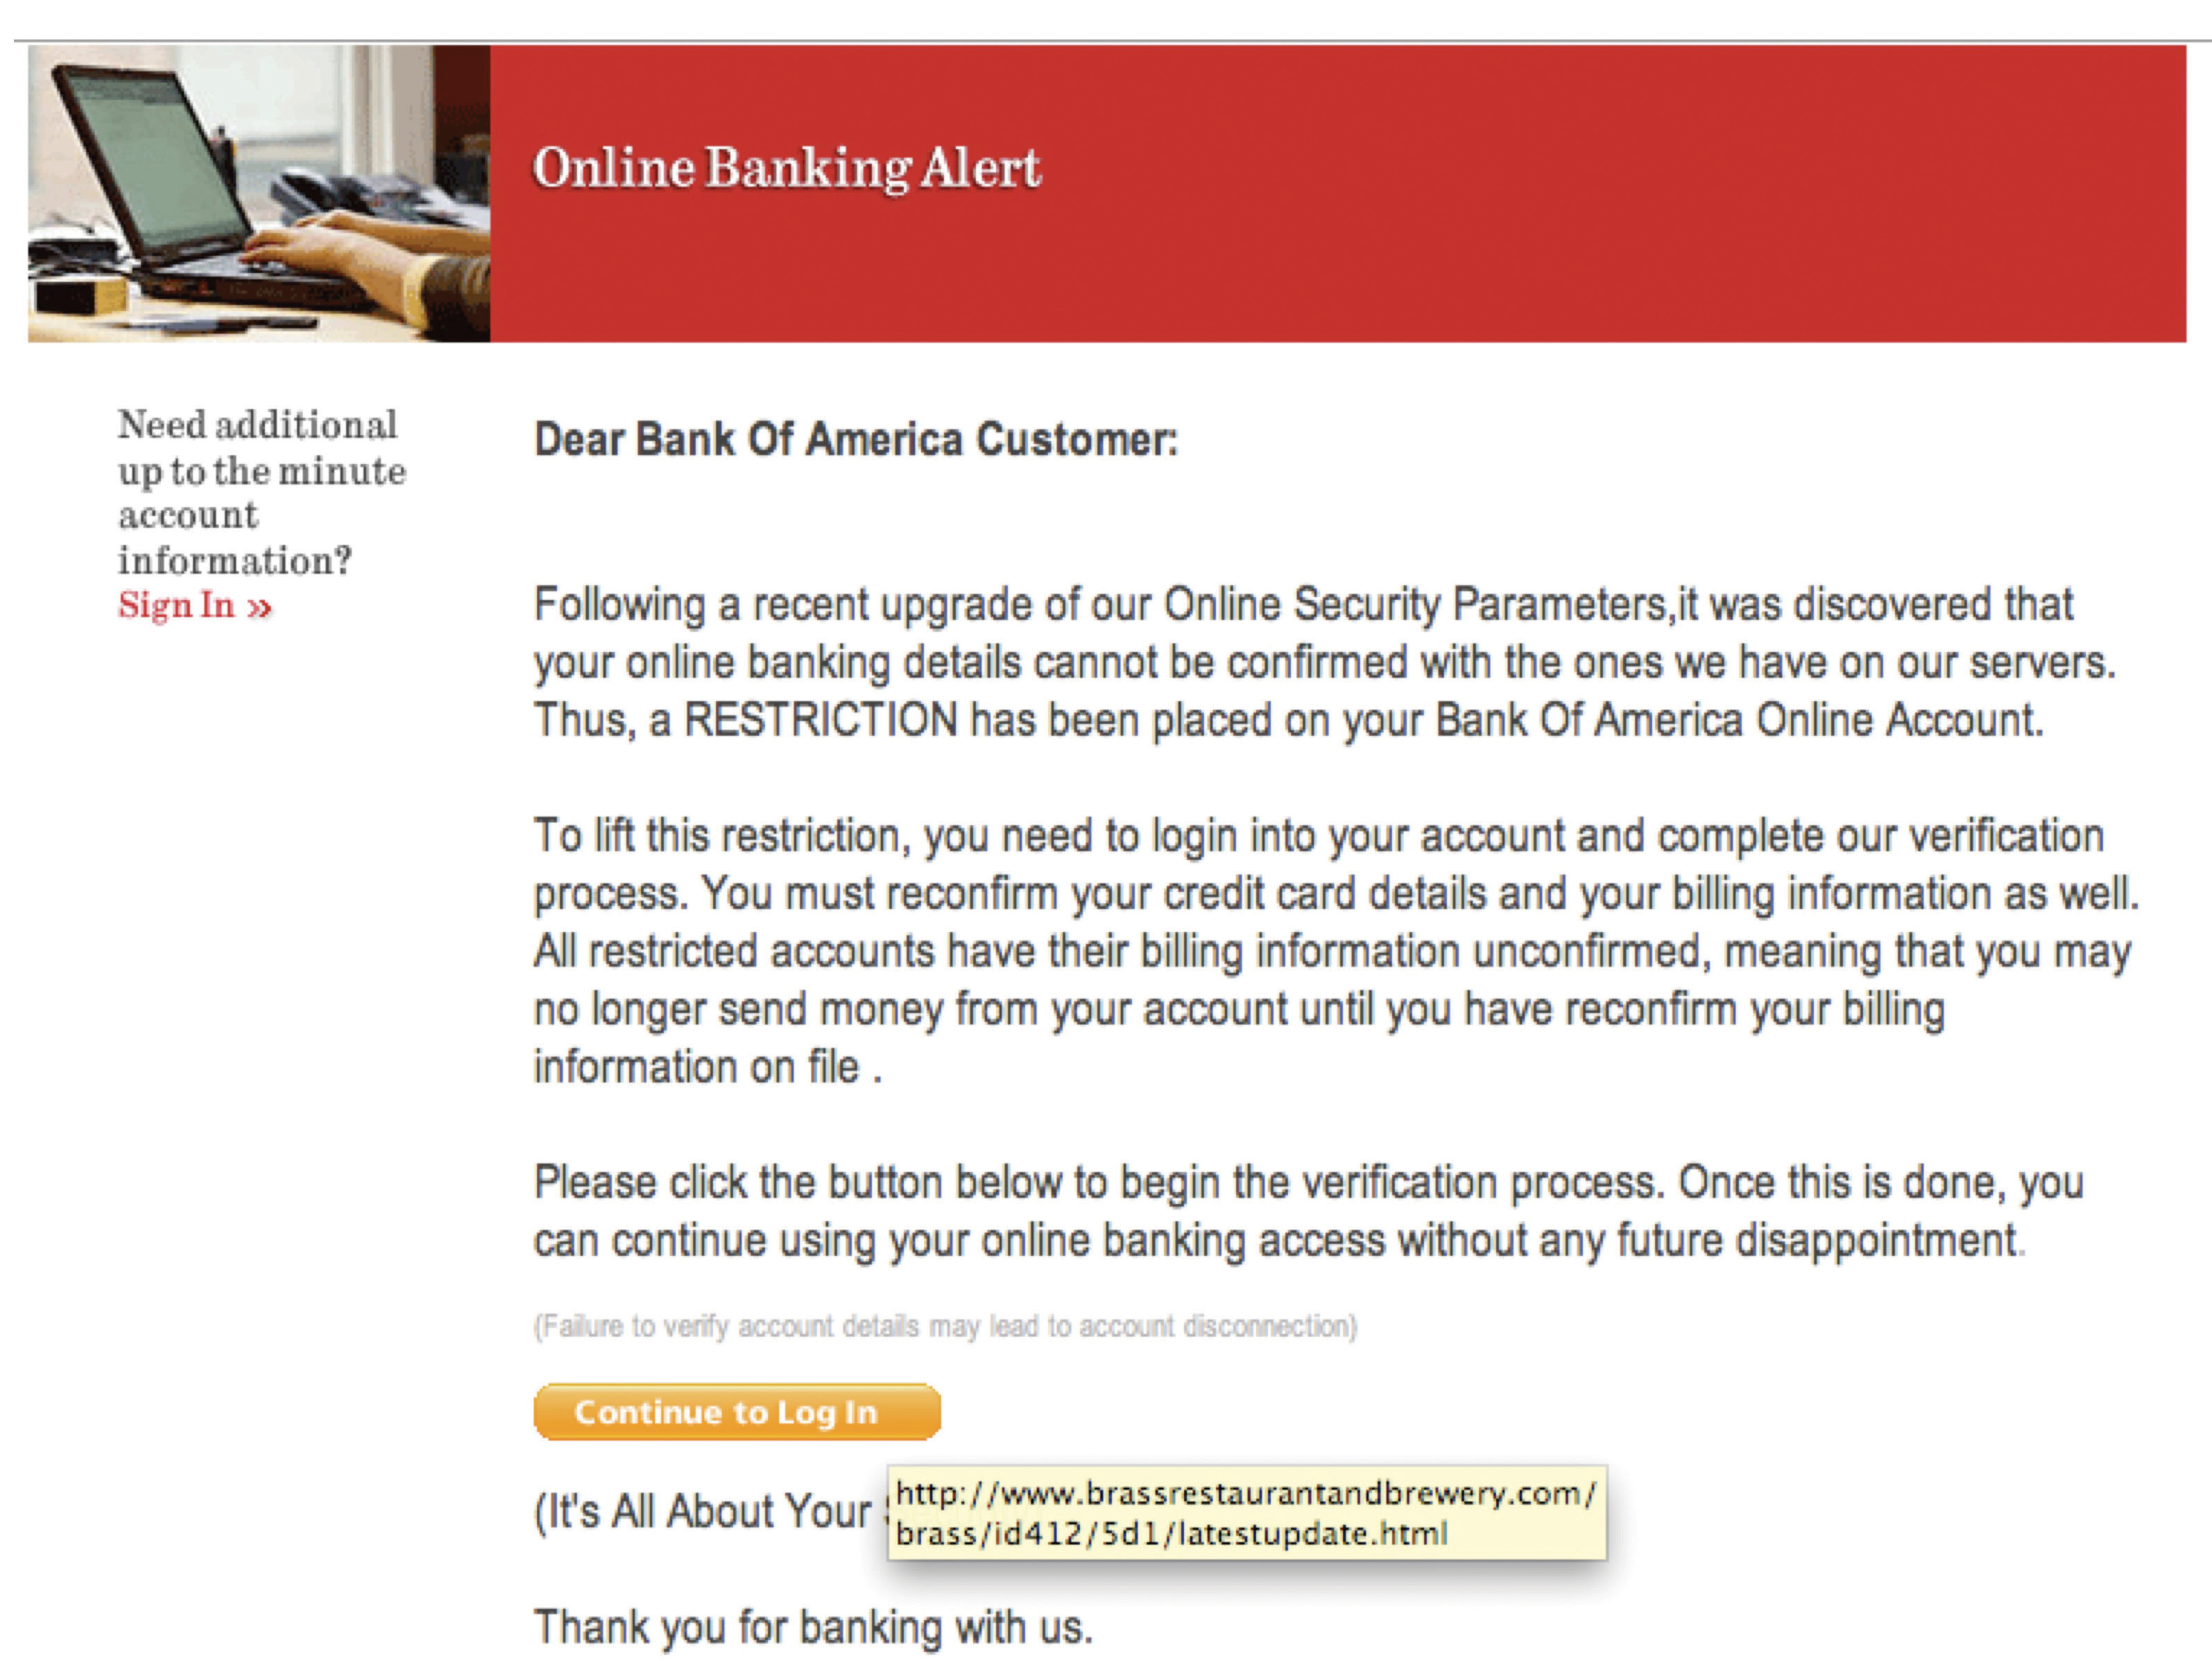 """This e-mail message looks like it's from Bank of America. However, hovering the cursor above the """"Continue to Log In"""" button reveals the URL without clicking through to the site. Note how the actual URL associated with the link is not associated with Bank of America."""